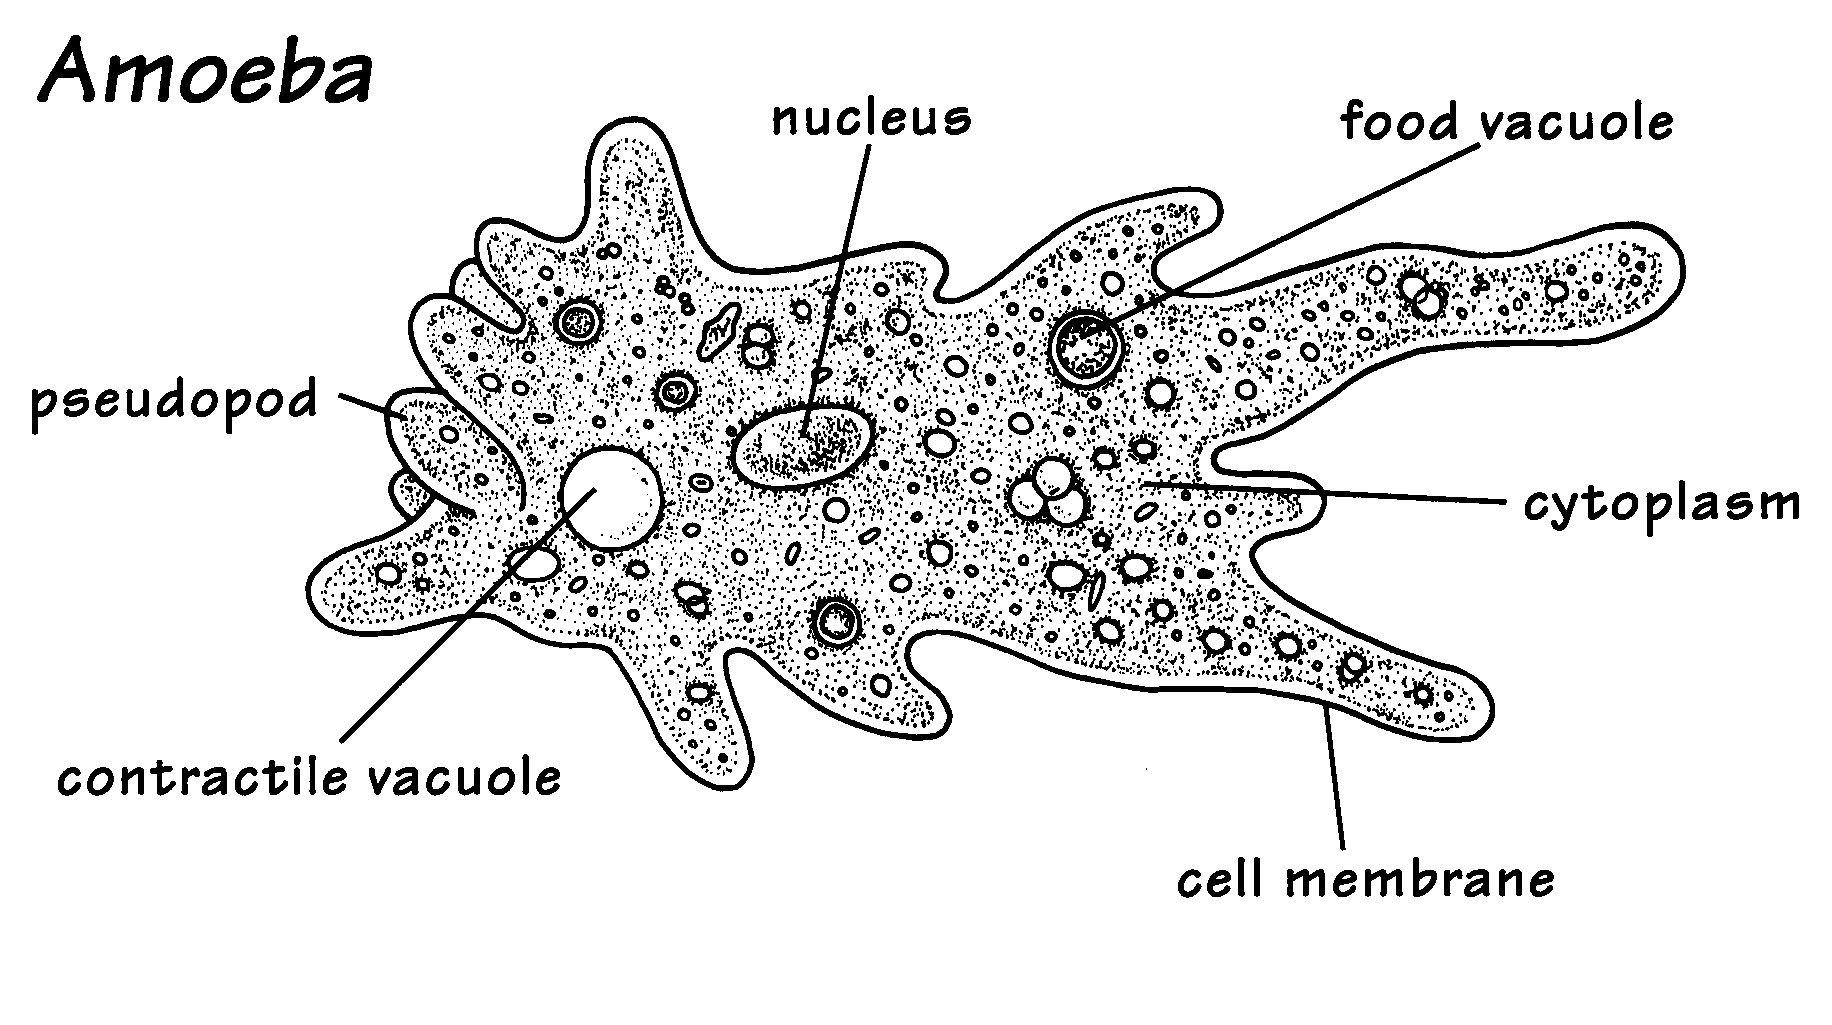 This is a picture of an amoeba, an amoeba is a unicellular organism ...